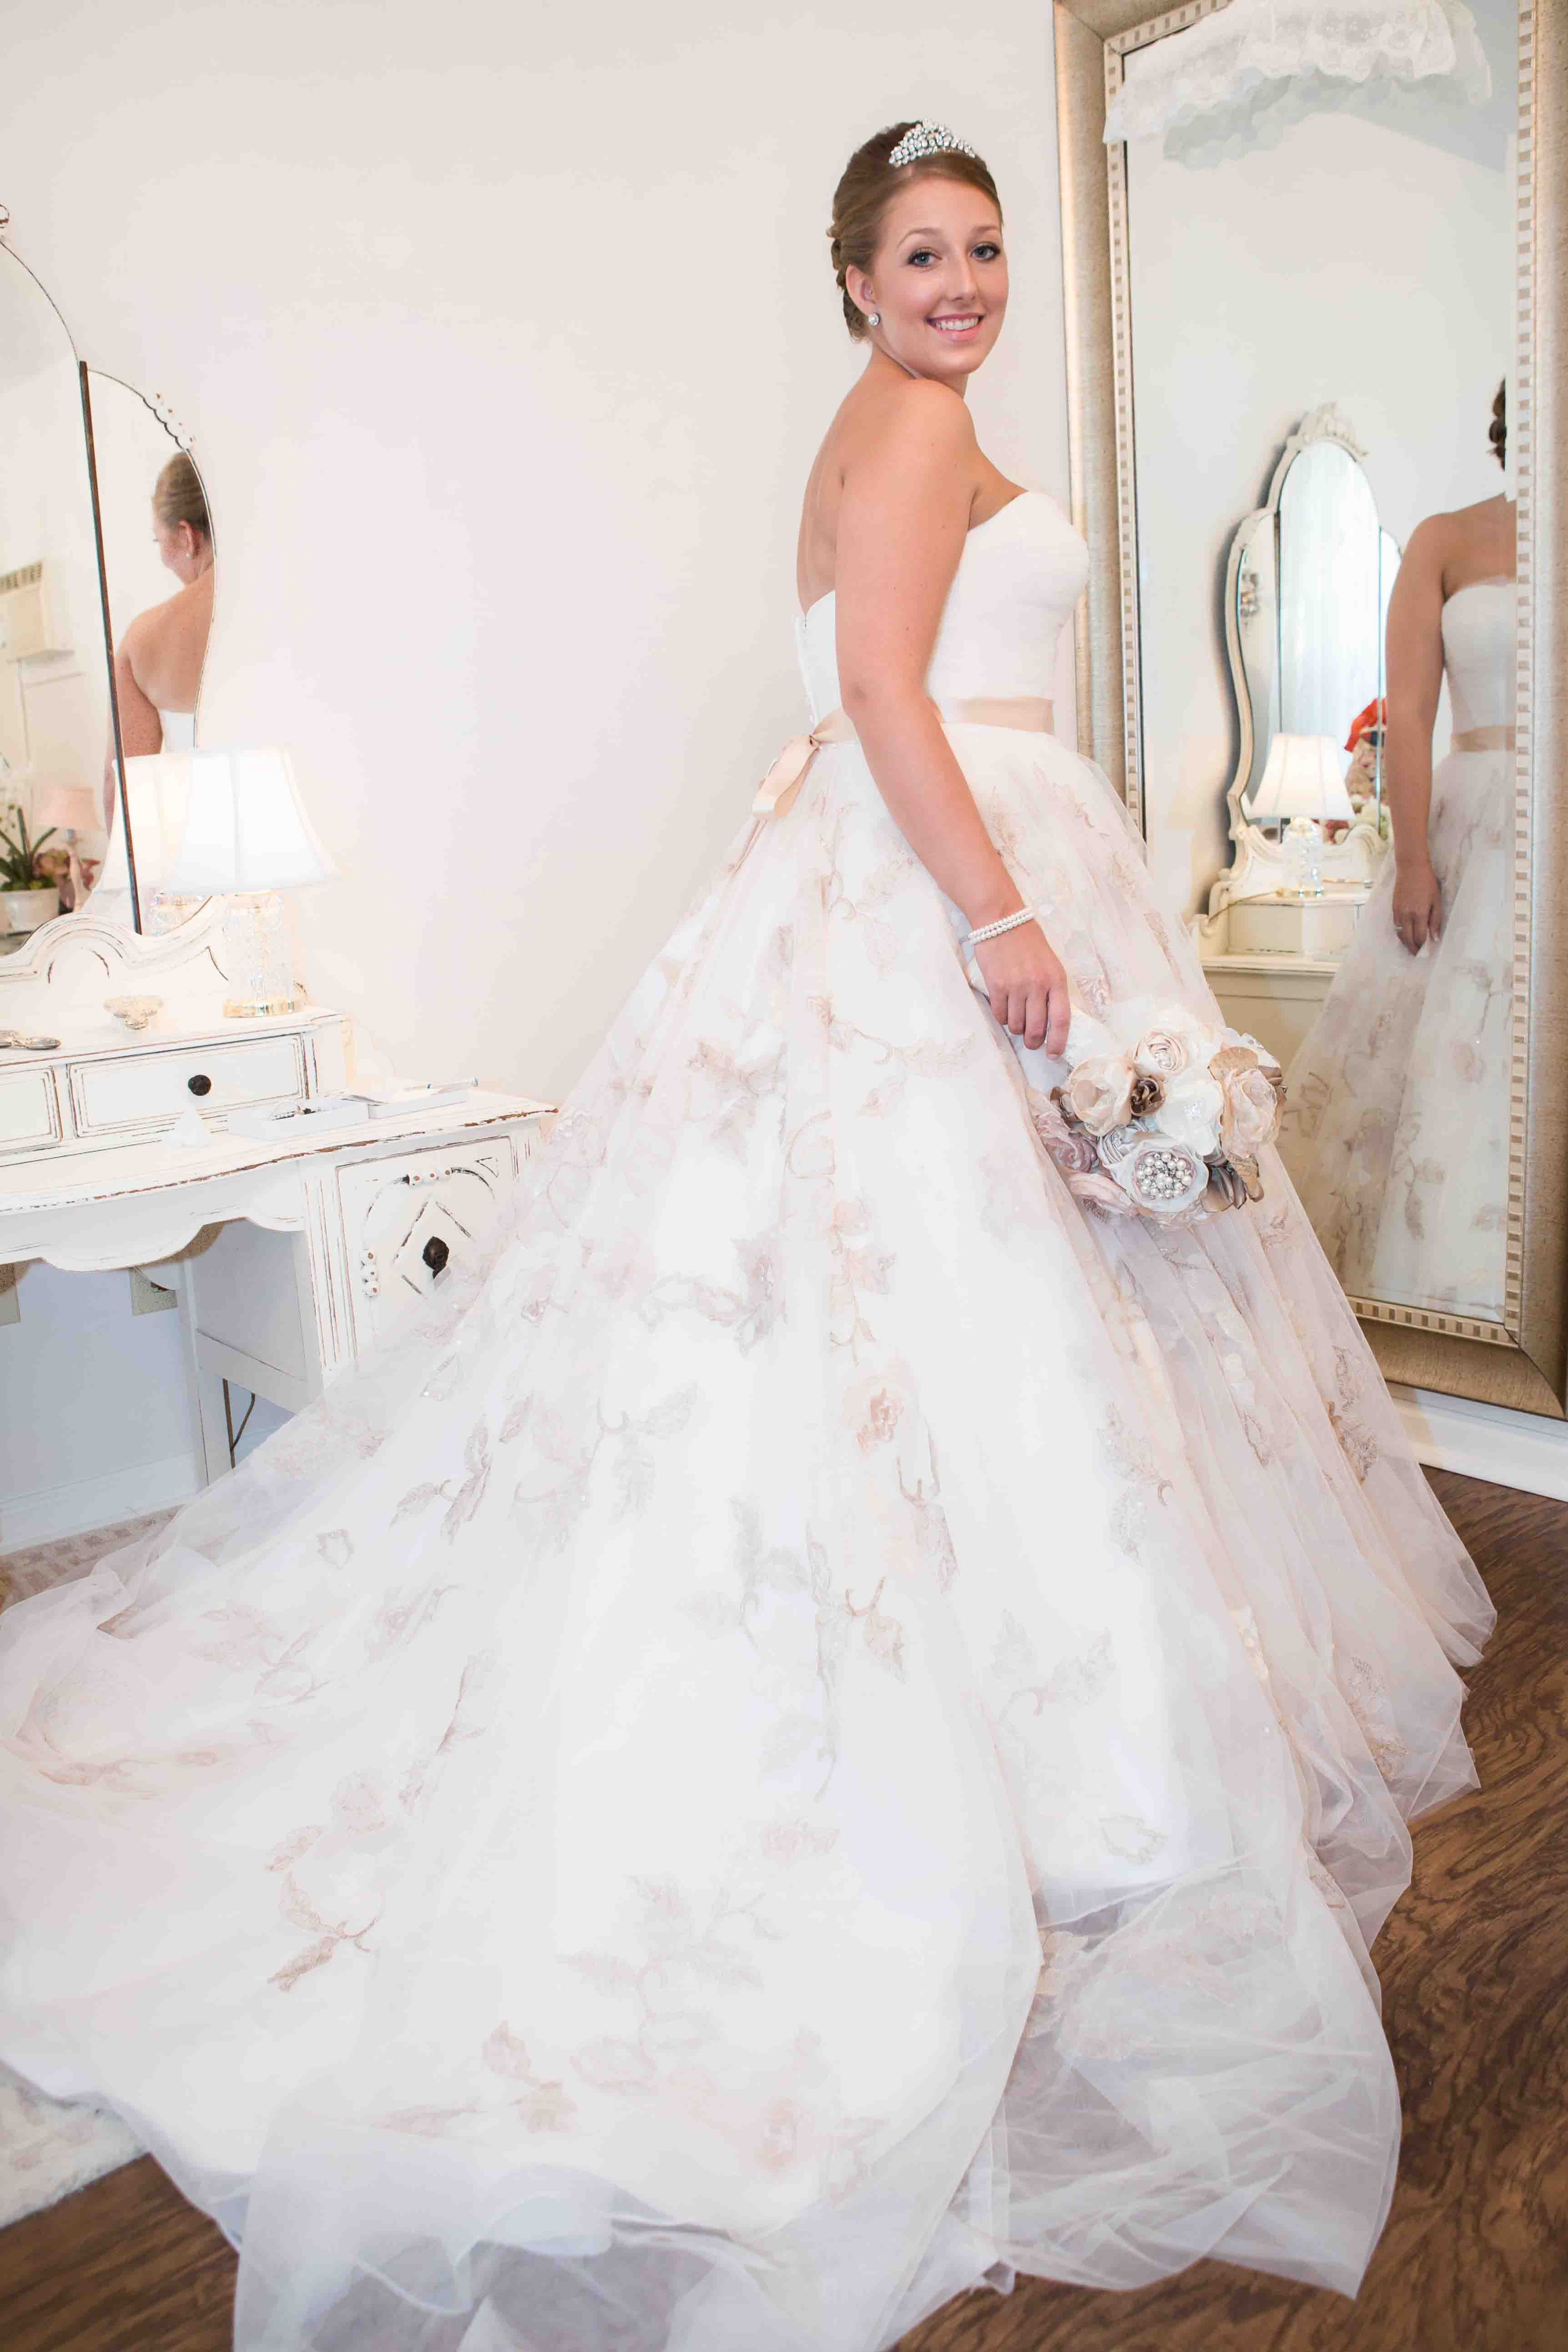 A beautiful bride getting ready in the bridal studio at